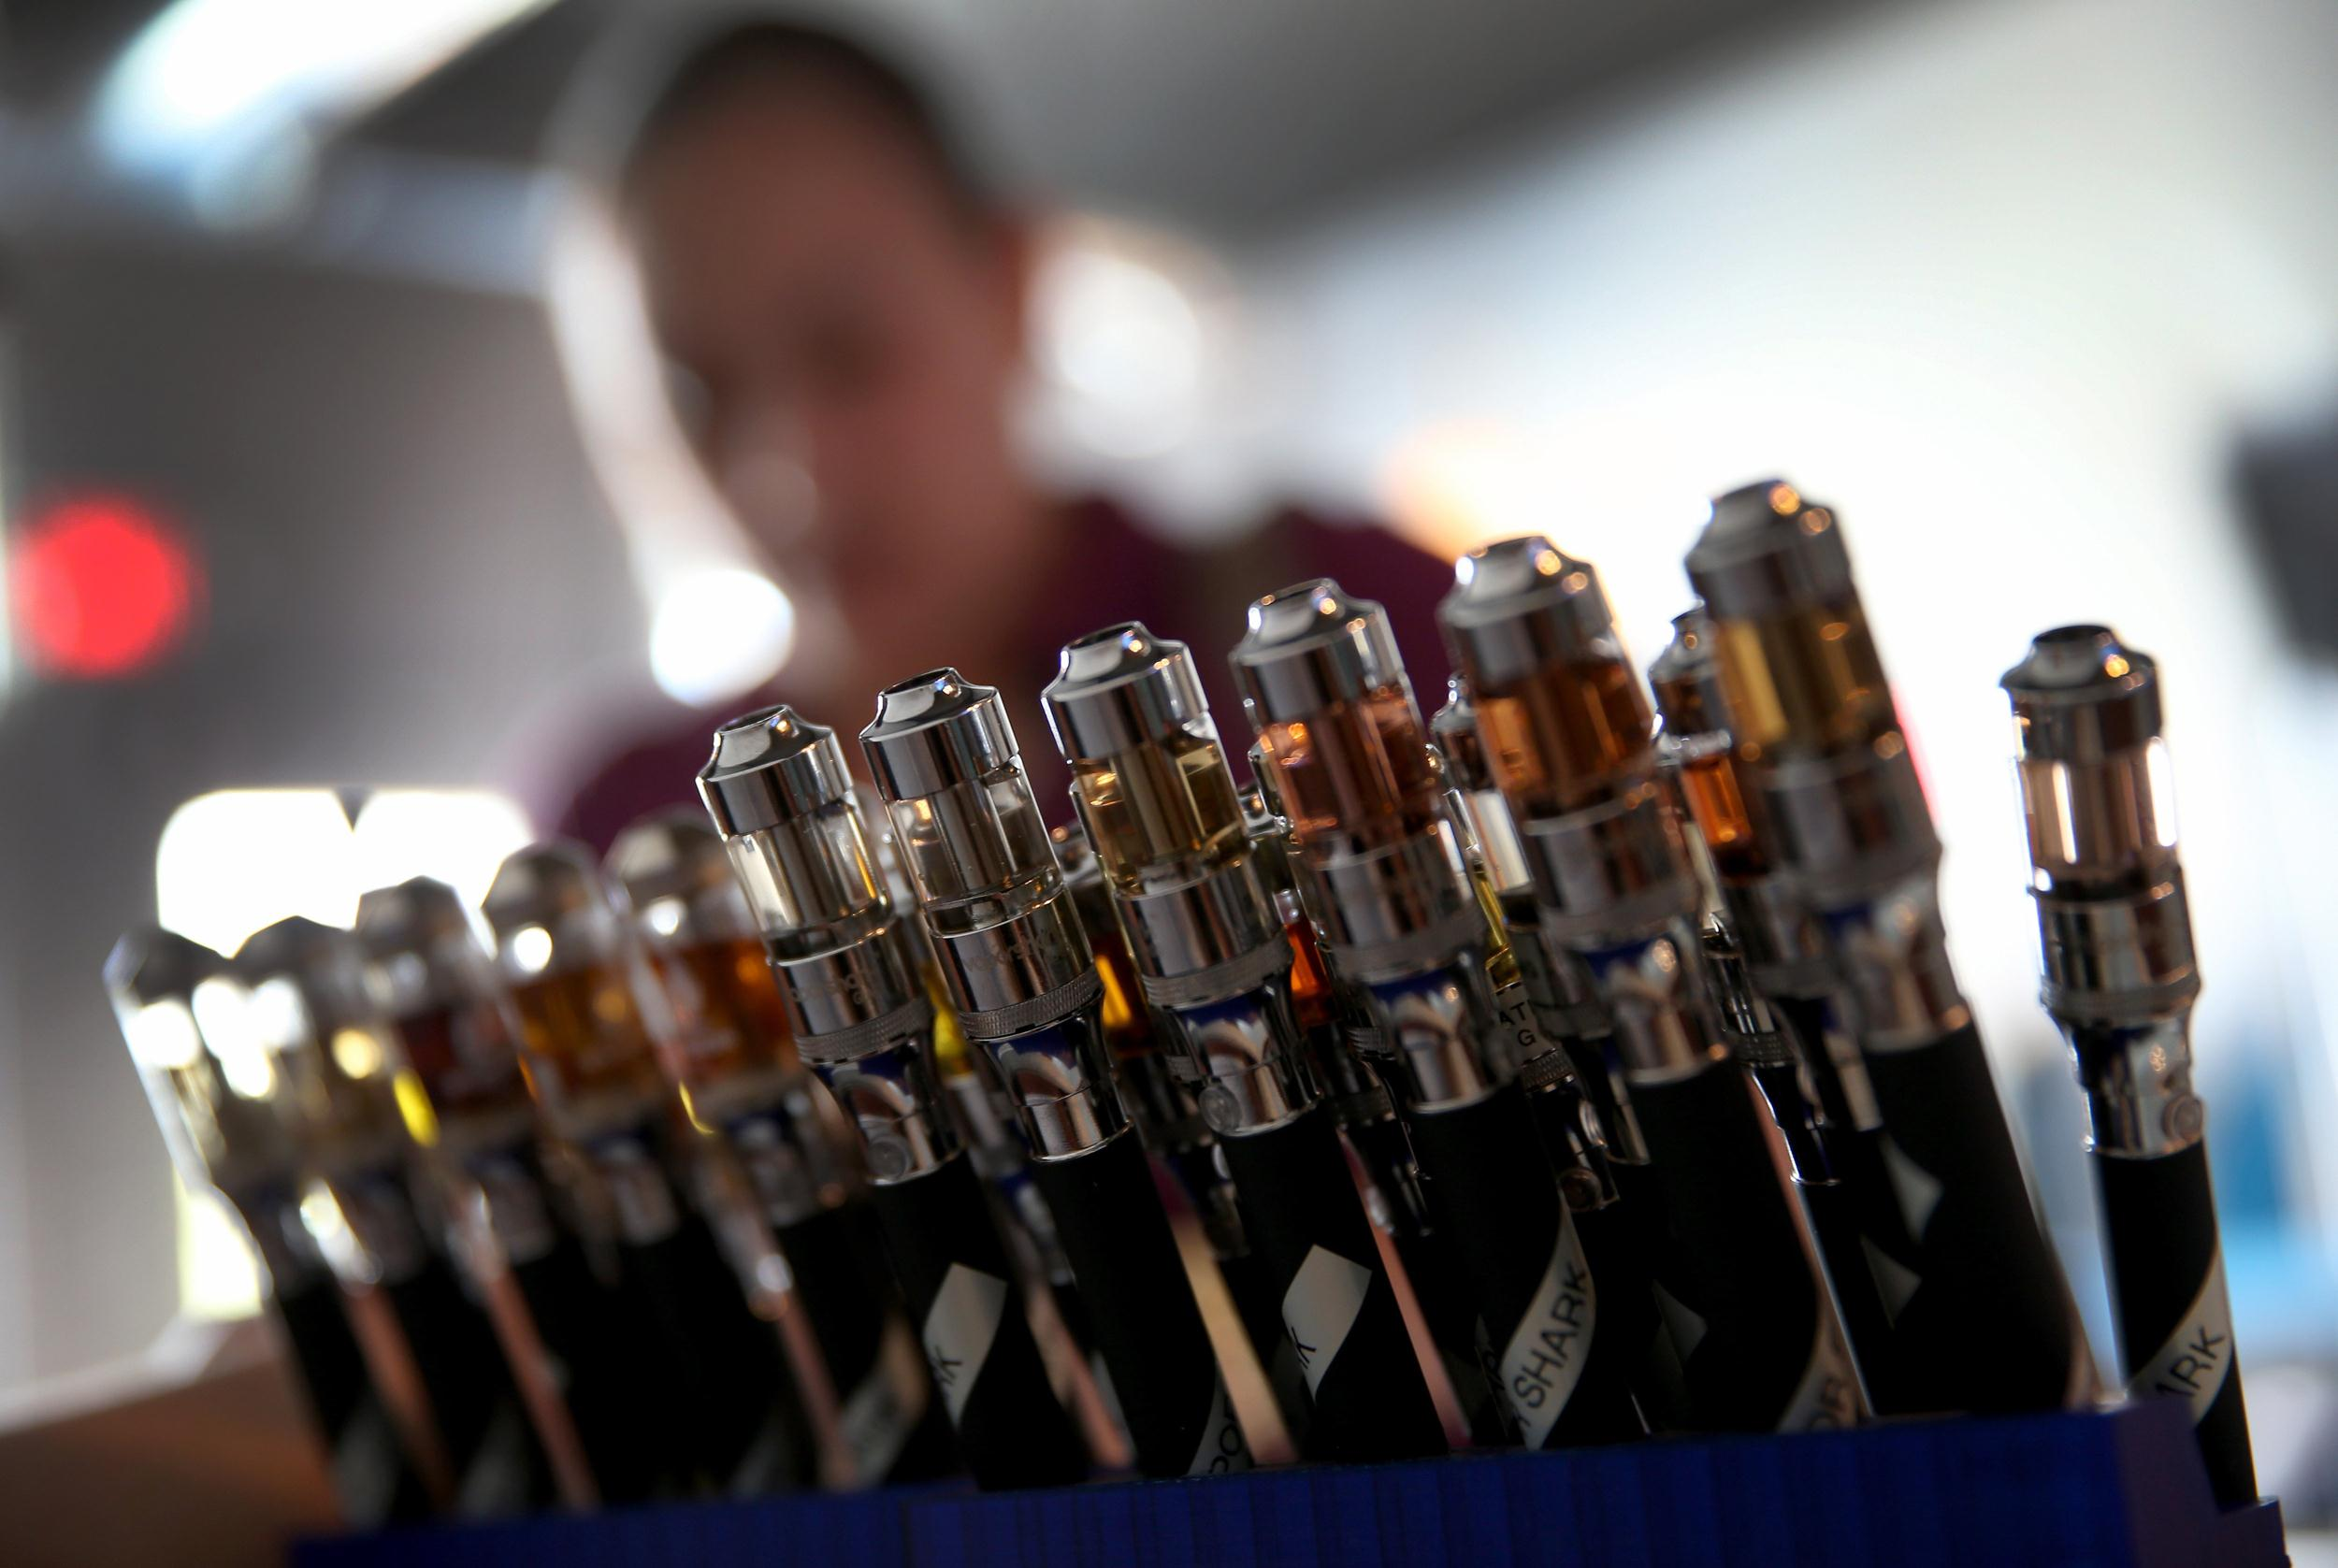 Image: Top US Tobacco Companies Enter E-Cigarette Market